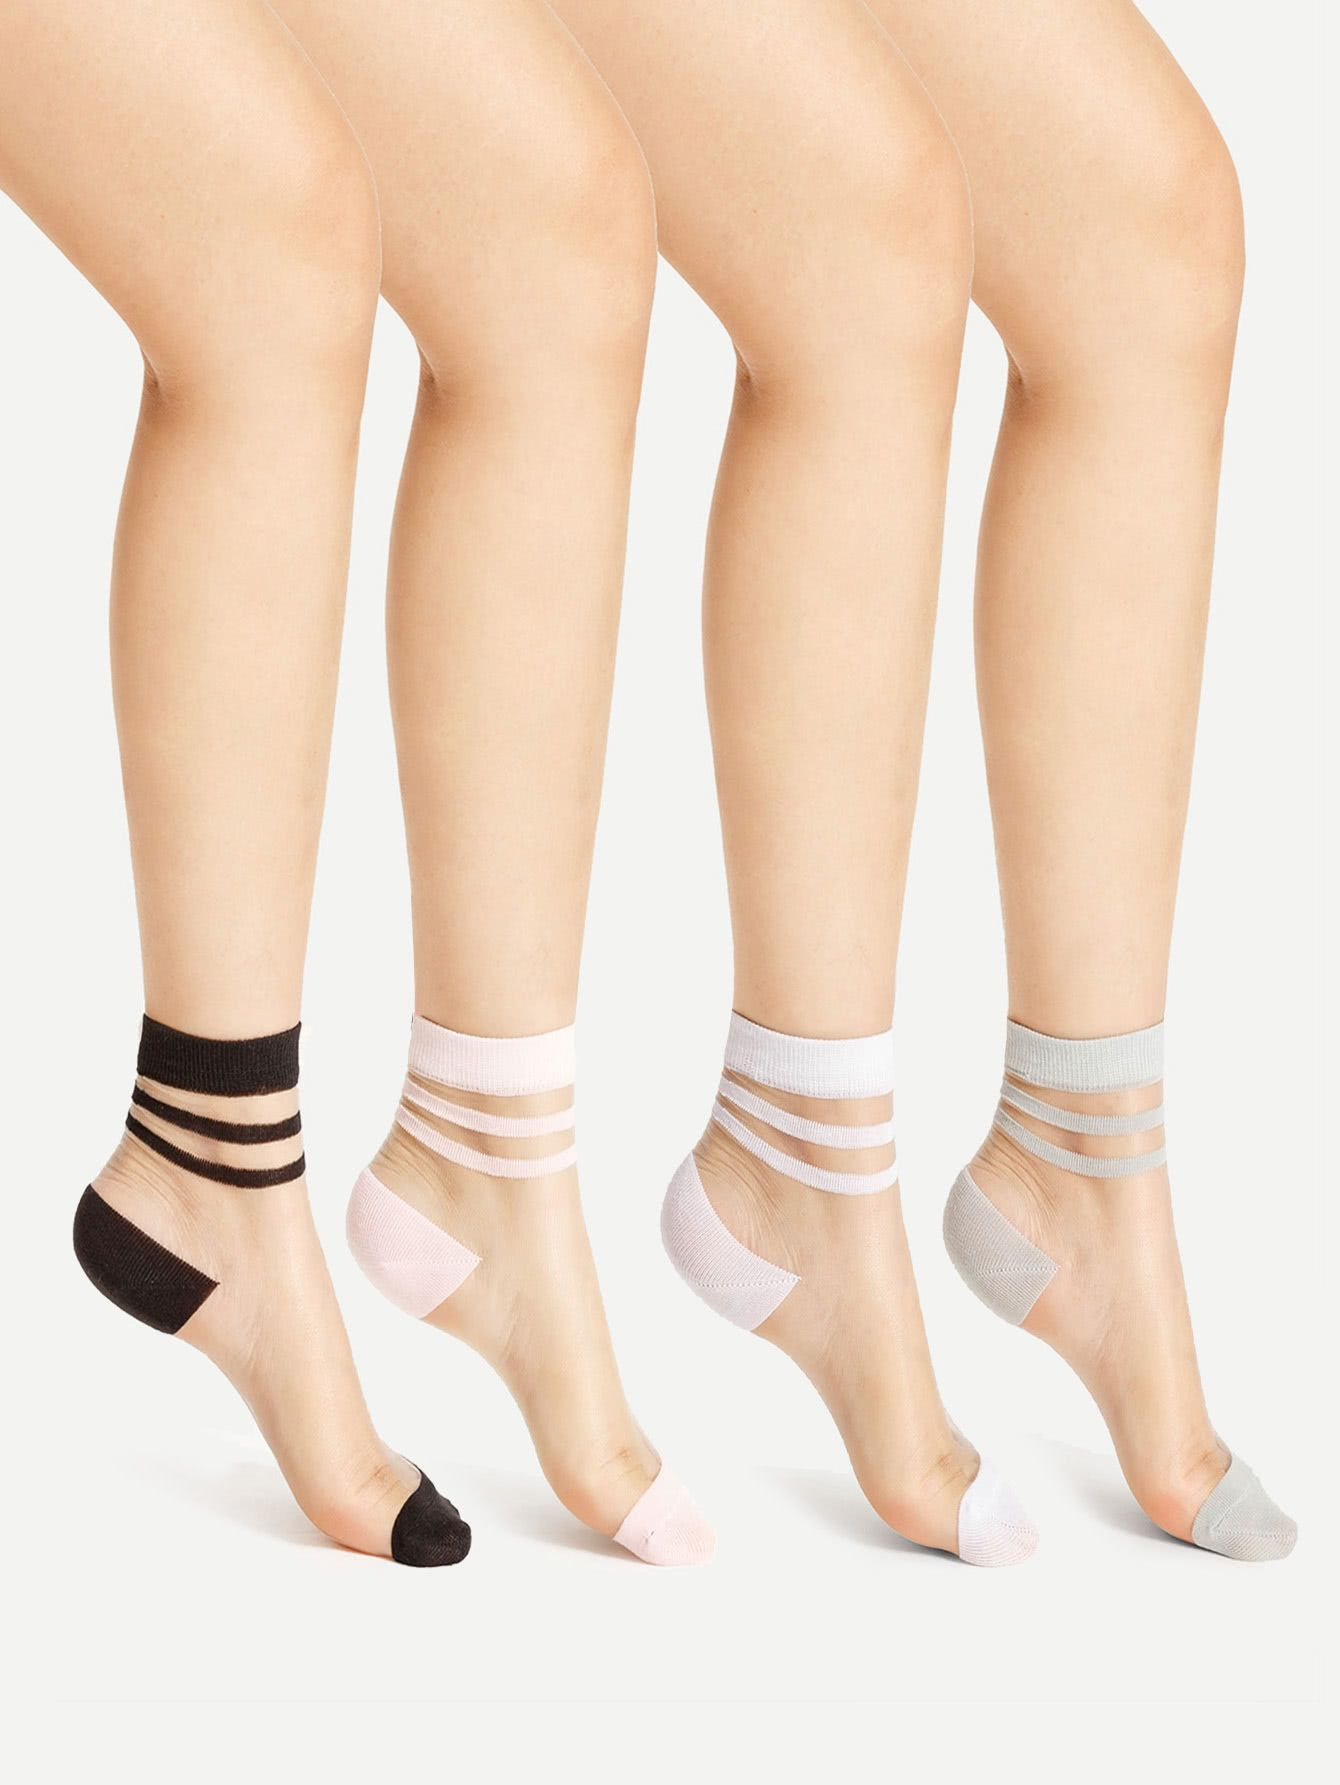 9887b08c5ab Striped Cuff Sheer Ankle Socks DETAILS Style   Casual Material   Nylon  Pattern Type   Striped Color   Multicolor Length (cm)   29 7 cm Size  Available ...